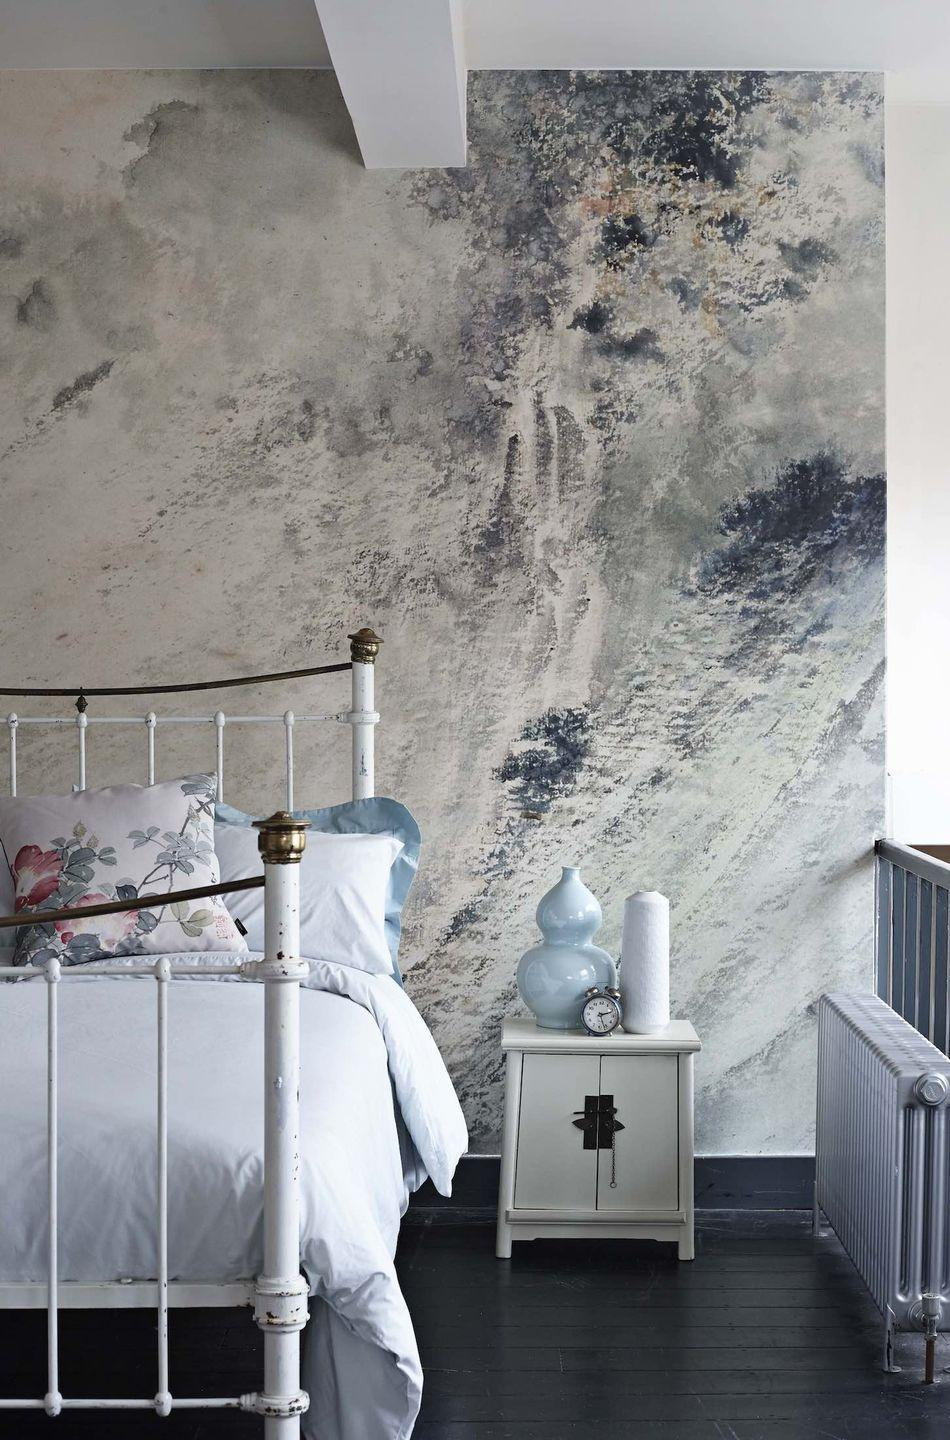 """<p>Paint effects, and particularly concrete effects, are big news at the moment, and this beautiful mural is a case in point. It looks a bit like raw plaster or an abstract painting but it brings grey and navy blue together in a fabulous way and really makes an impression. They are custom printed to your measurements, so there is no wastage.</p><p>Pictured: <a href=""""https://www.surfaceview.co.uk/wallpaper-murals/ash0096"""" rel=""""nofollow noopener"""" target=""""_blank"""" data-ylk=""""slk:Waterfall in a High Mountain Mural by Tao Gu from the Ashmolean Museum Collection. Surface View"""" class=""""link rapid-noclick-resp"""">Waterfall in a High Mountain Mural by Tao Gu from the Ashmolean Museum Collection. Surface View</a></p>"""